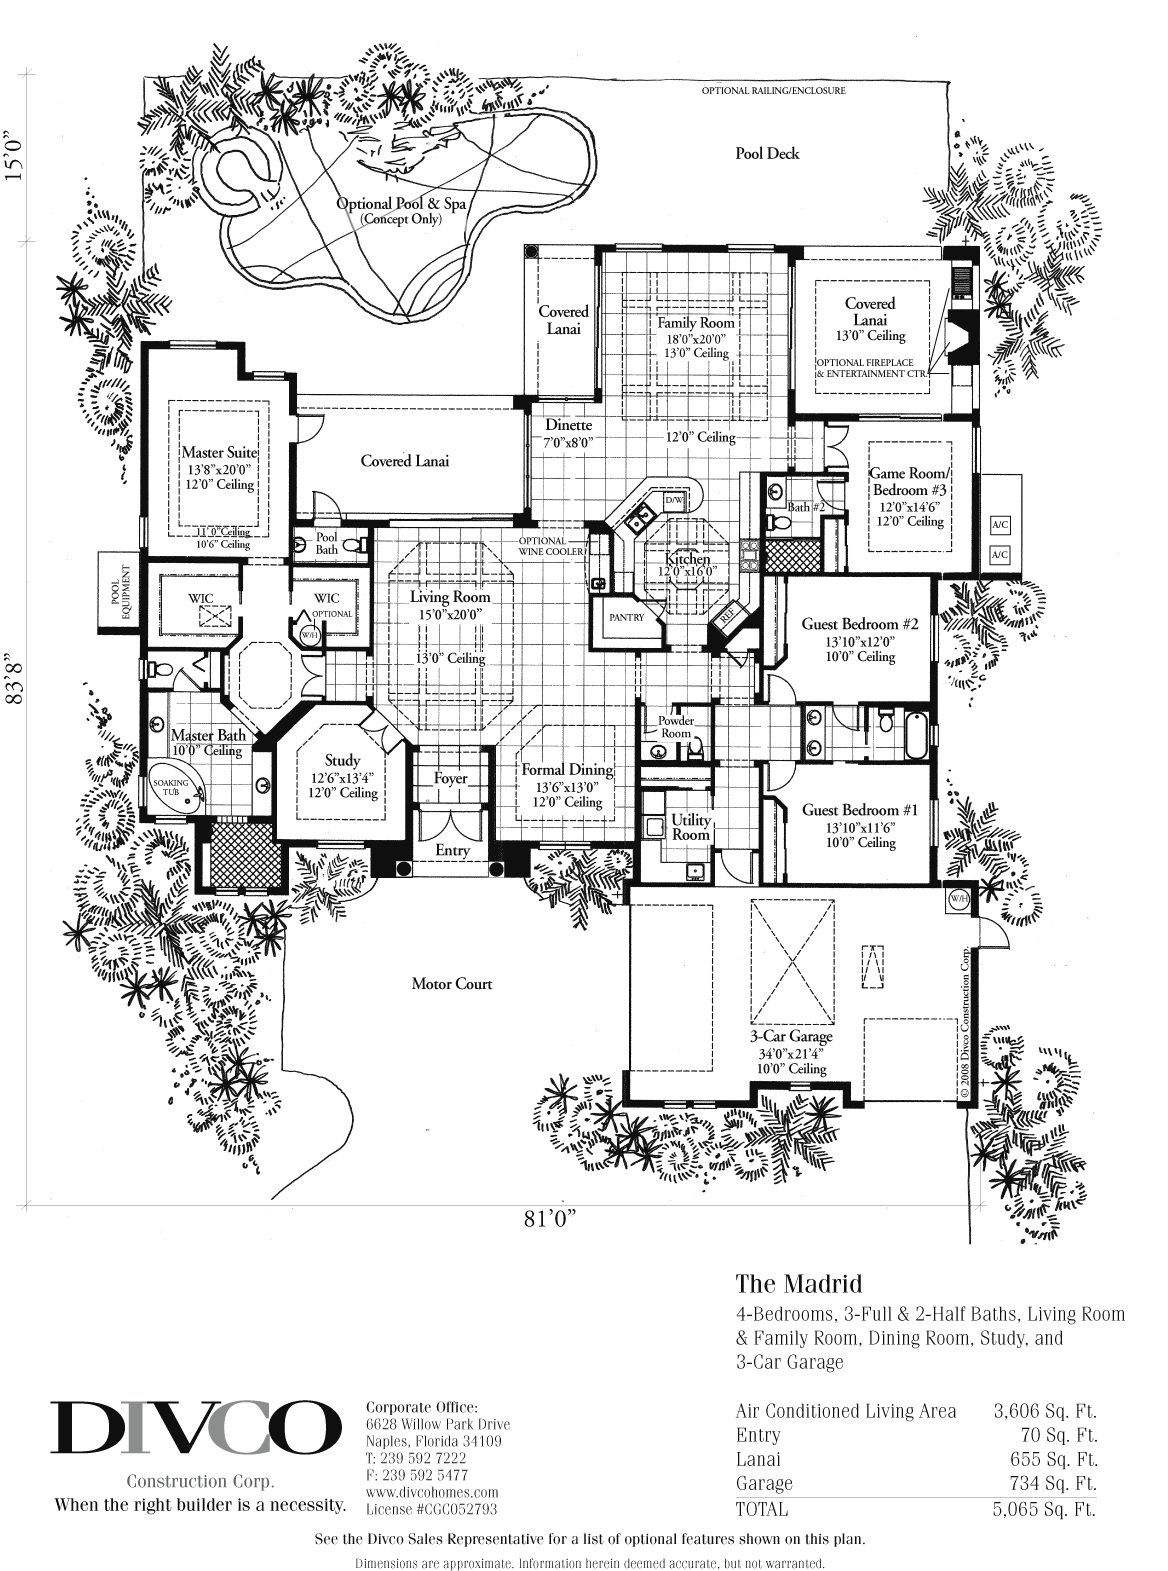 Decoration Ideas : Divco Floor Plan The Madrid Divco Custom Home ...